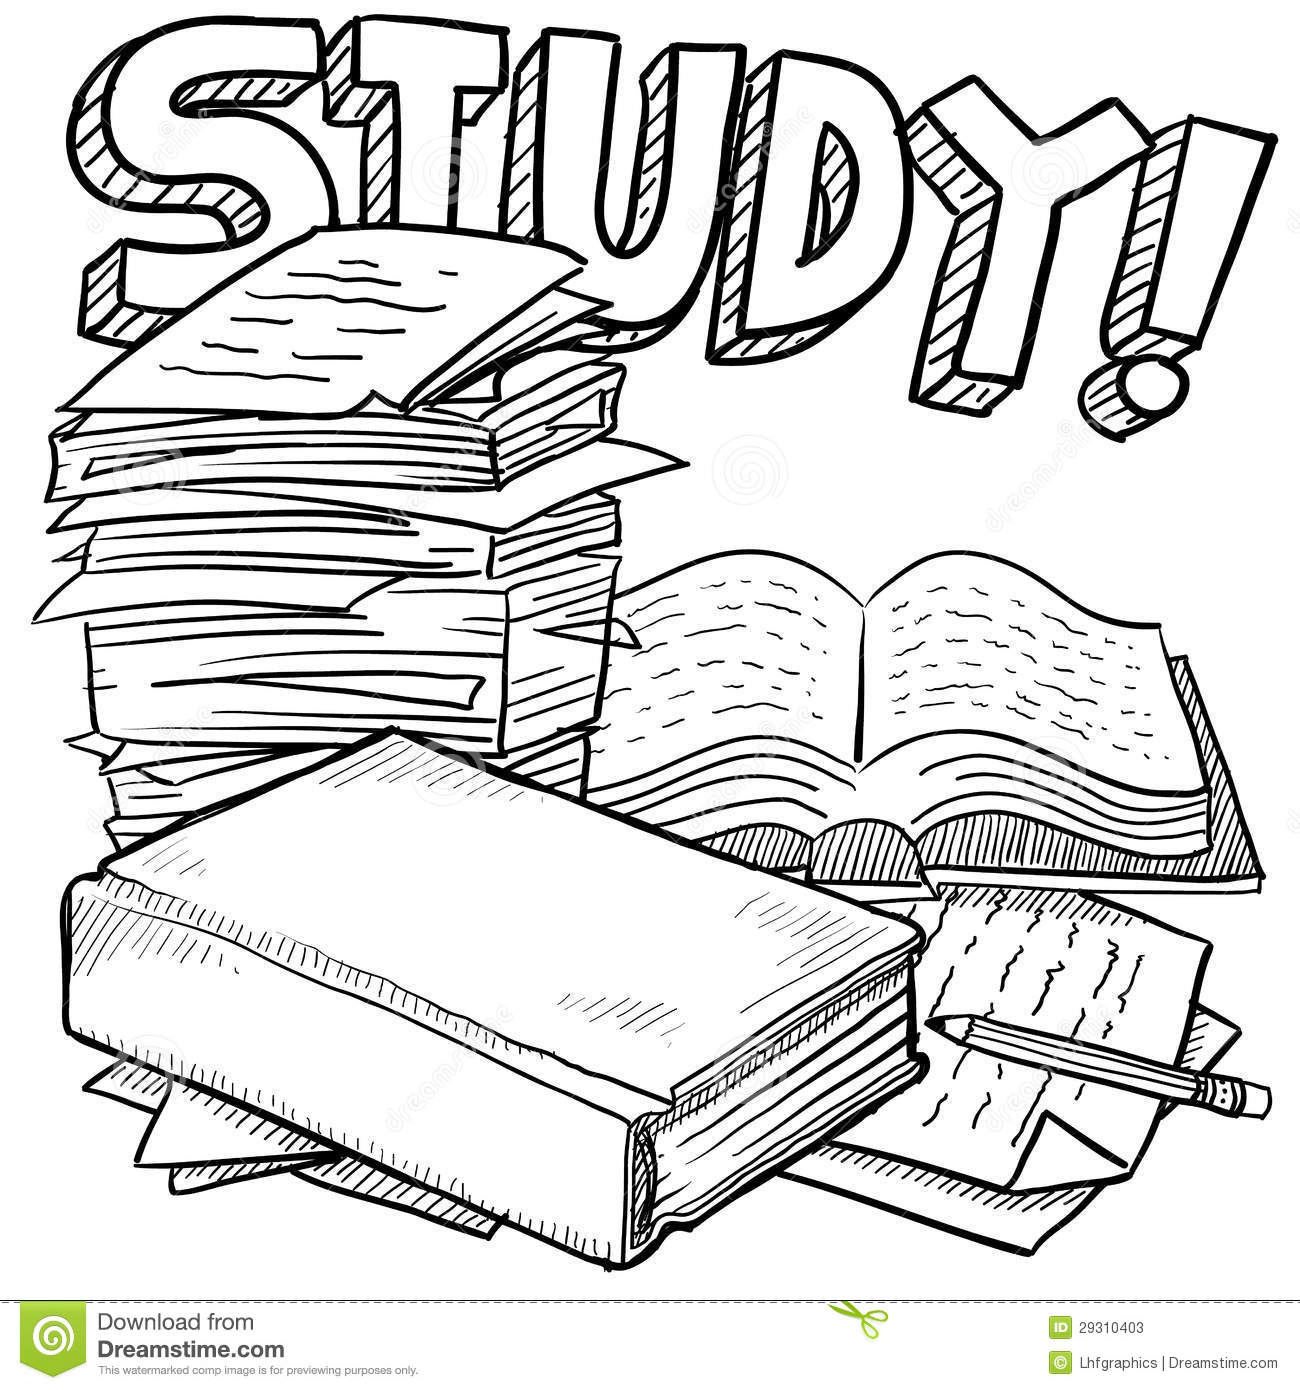 Study education sketch stock vector. Image of midterm ...